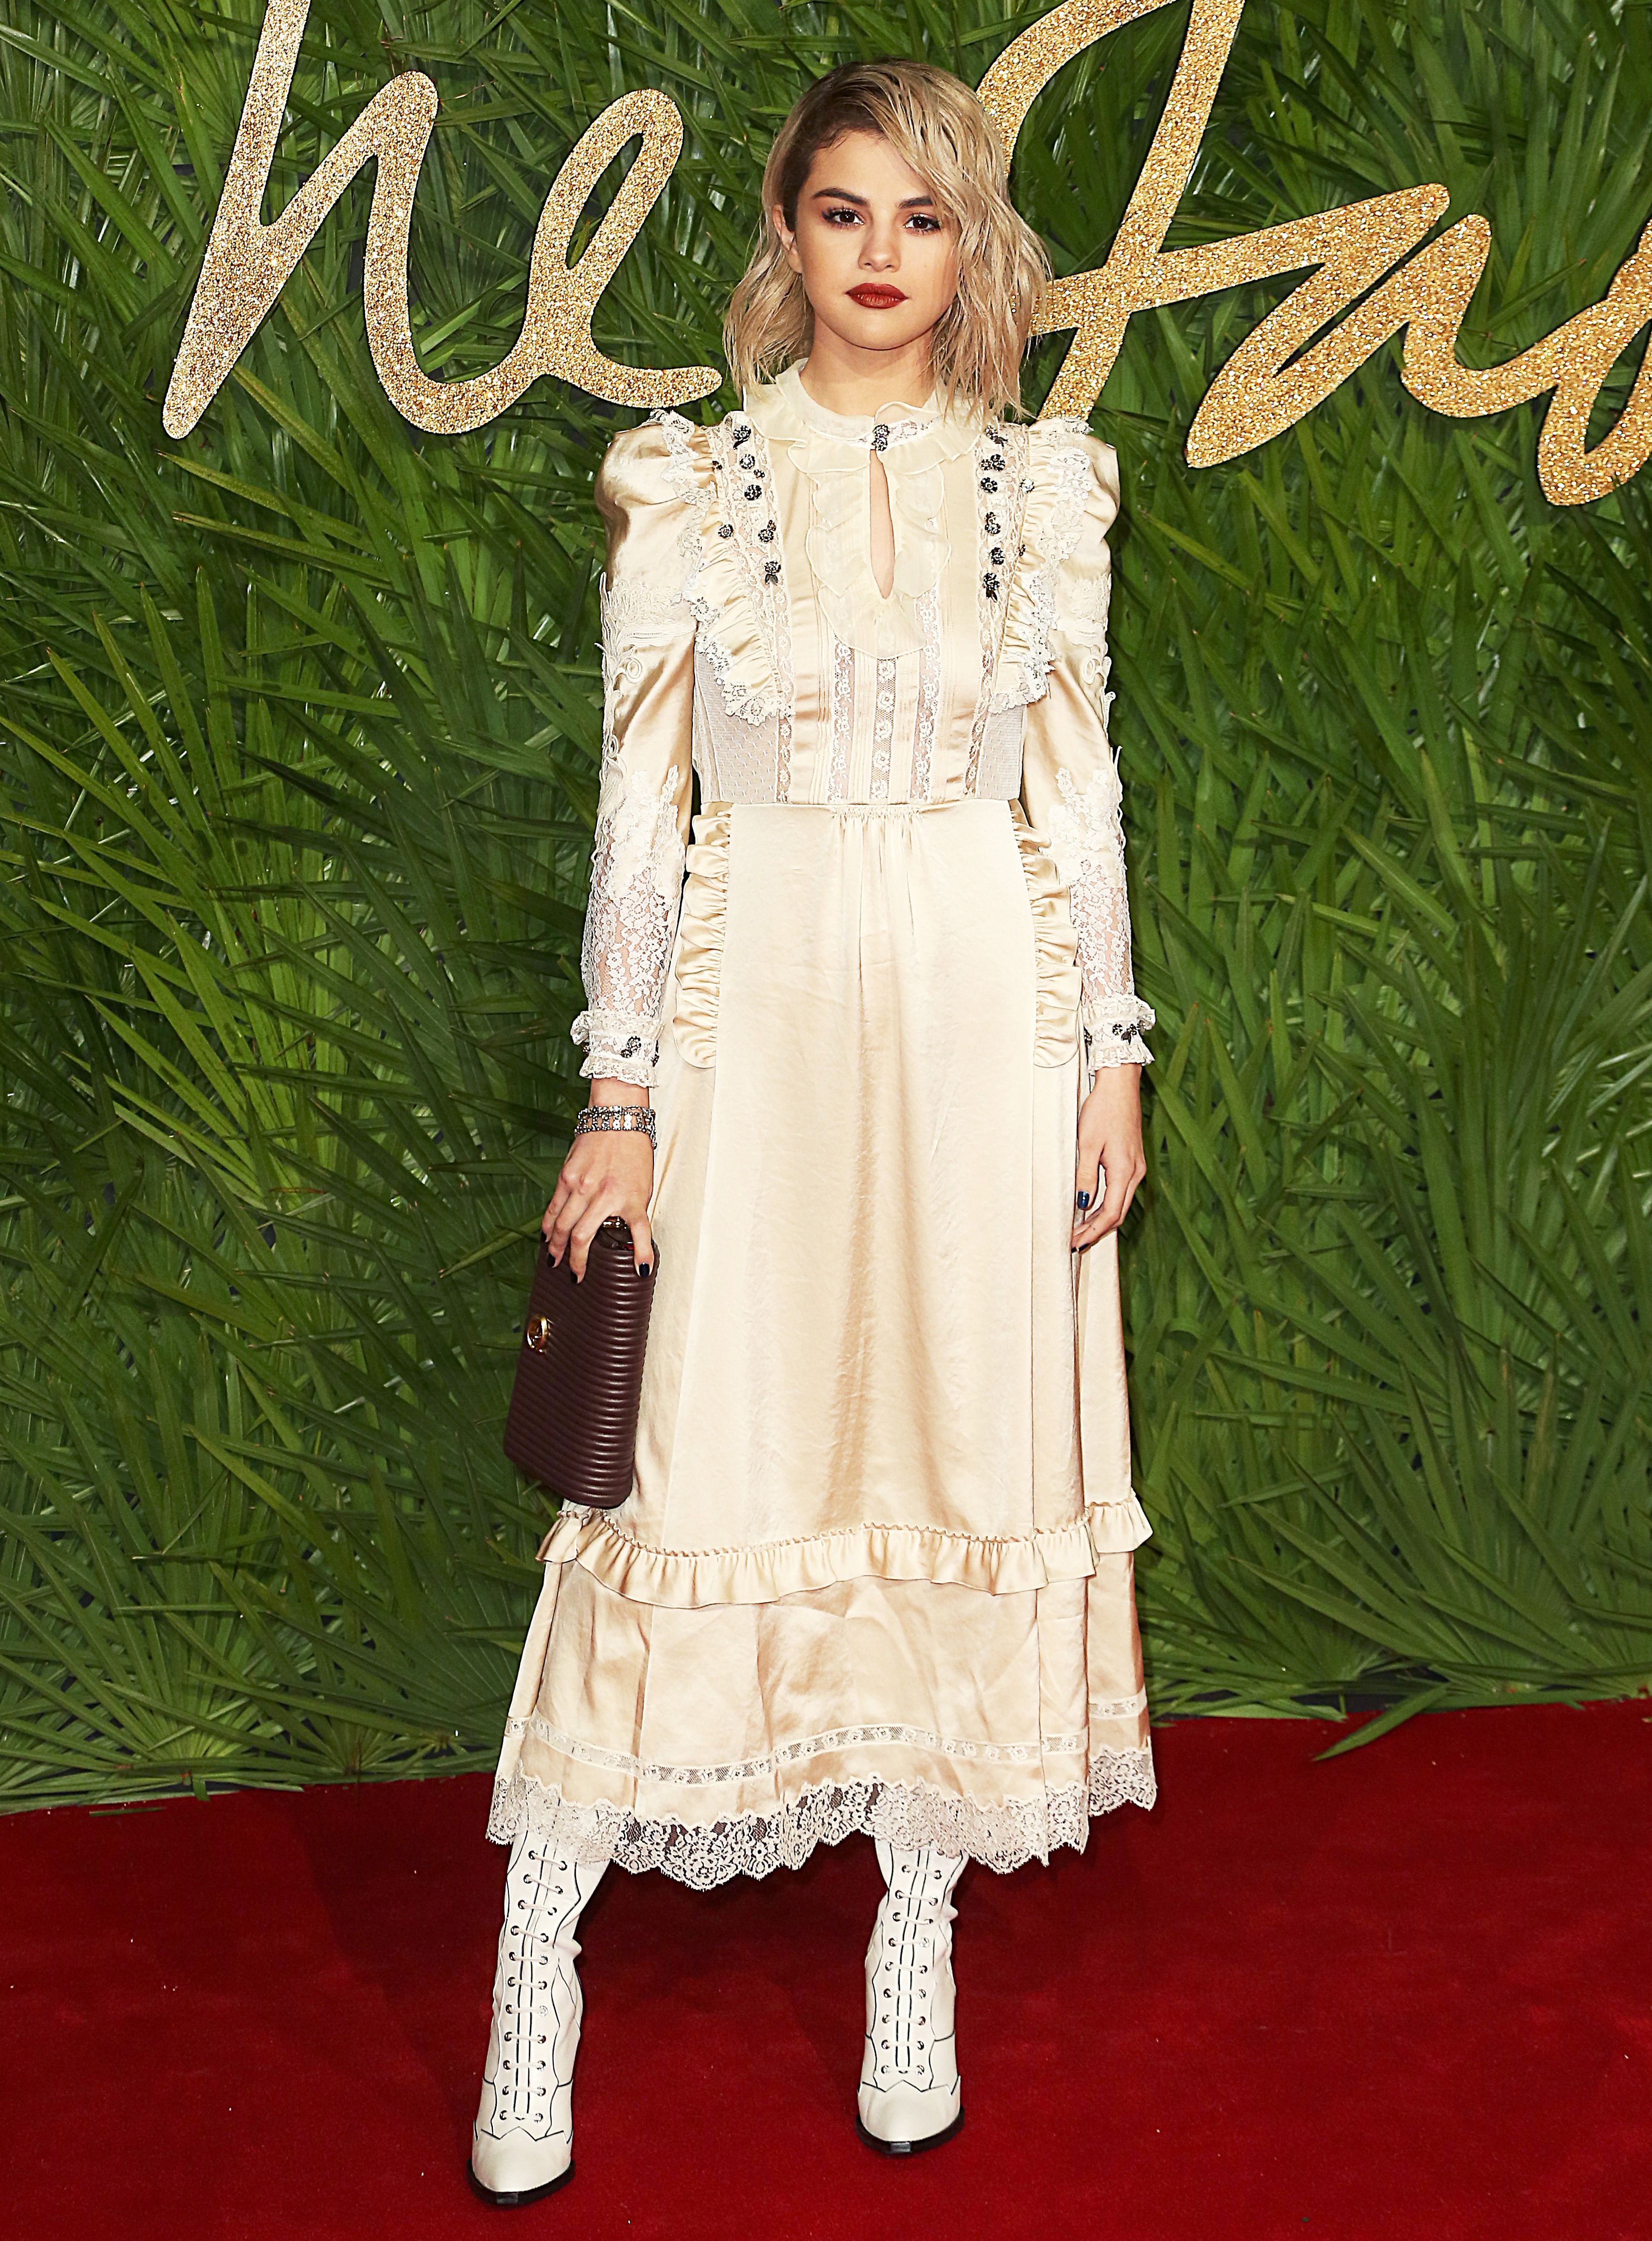 The Fashion Awards 2017, Royal Albert Hall, London UK, 04 December 2017, Photo by Brett D. Cove <P> Pictured: Selena Gomez <B>Ref: SPL1632930  051217  </B><BR/> Picture by: Brett D. Cove / Splash News<BR/> </P><P> <B>Splash News and Pictures</B><BR/> Los Angeles:310-821-2666<BR/> New York:212-619-2666<BR/> London:870-934-2666<BR/> <span id=